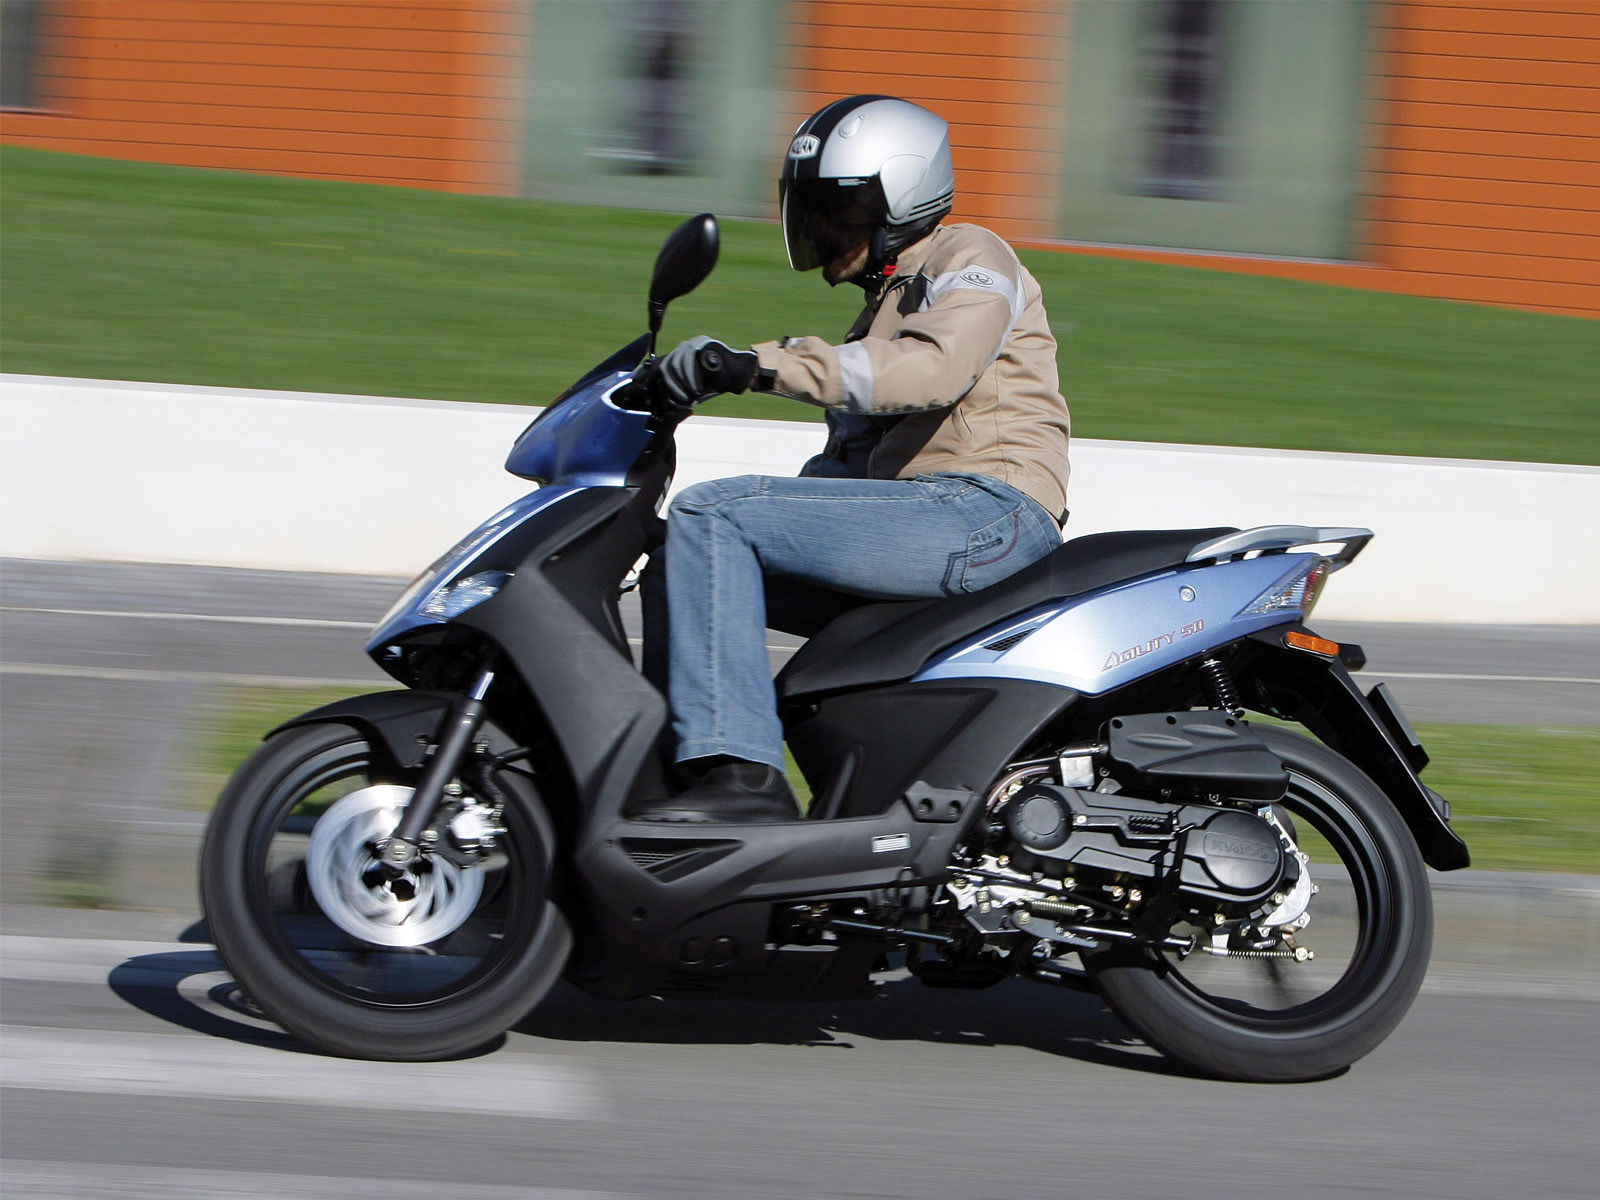 2012 kymco agility city 50 4t motorcycle insurance information. Black Bedroom Furniture Sets. Home Design Ideas